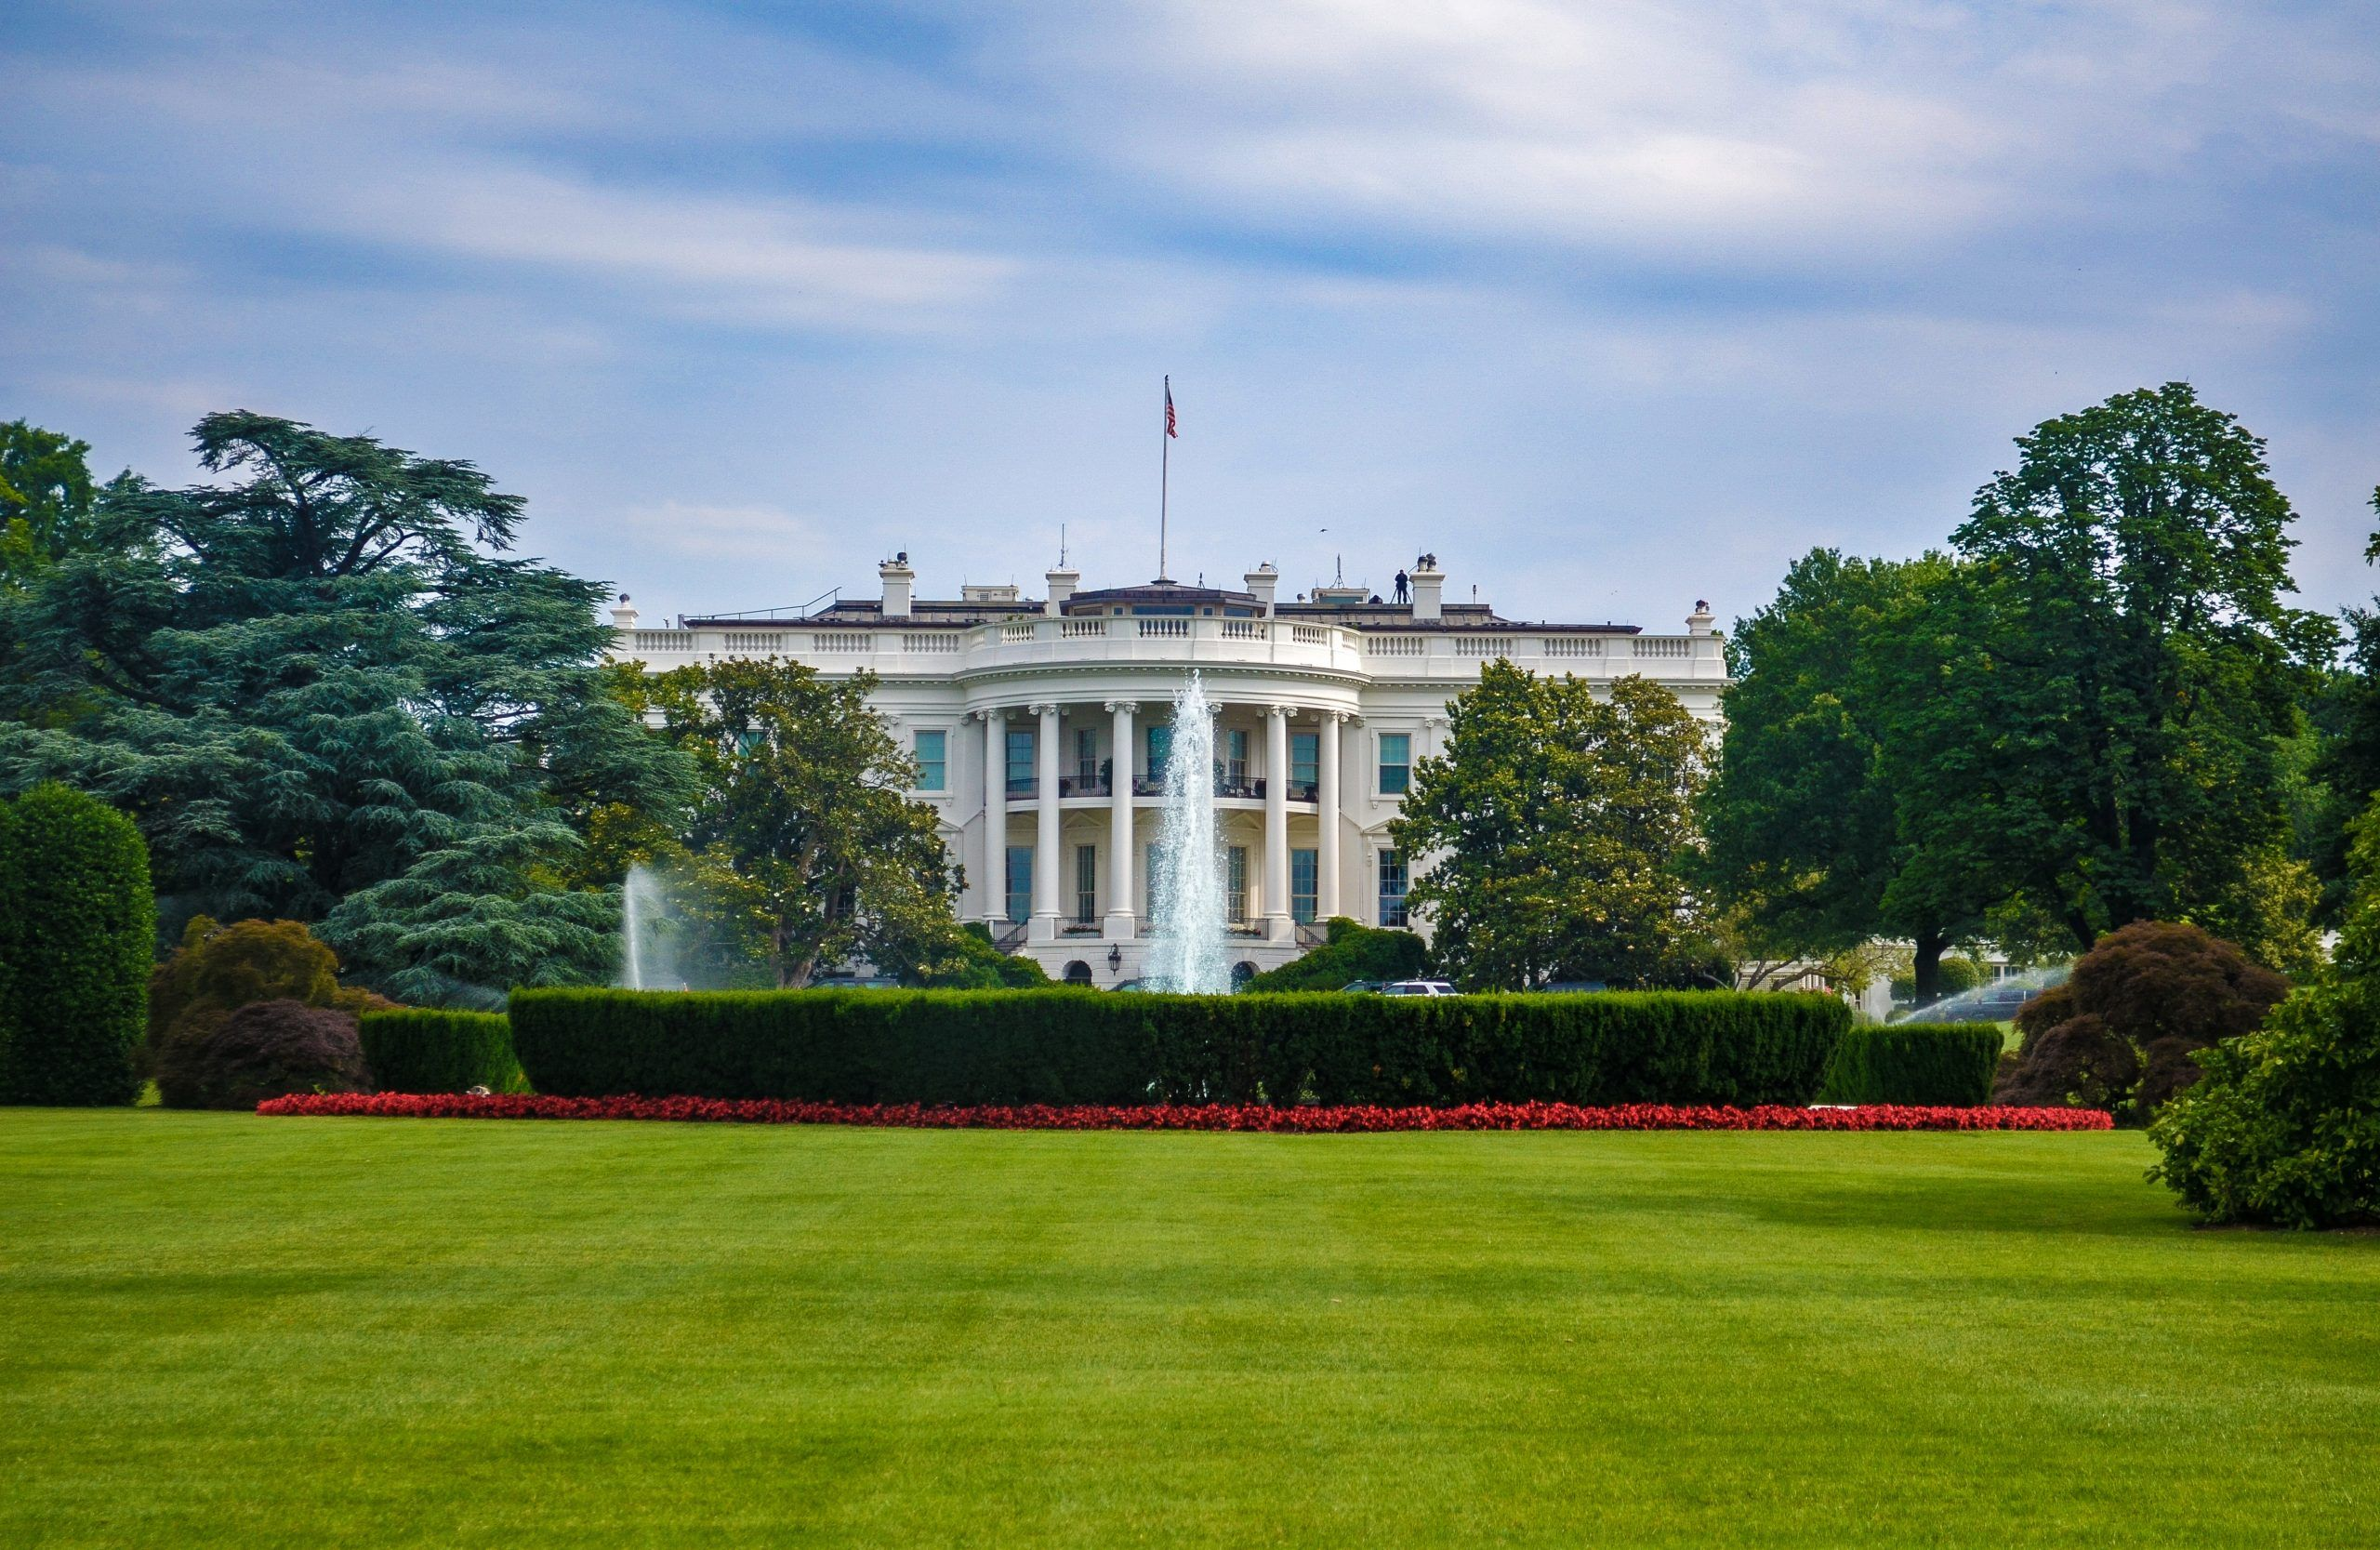 View of the White House from the exterior green